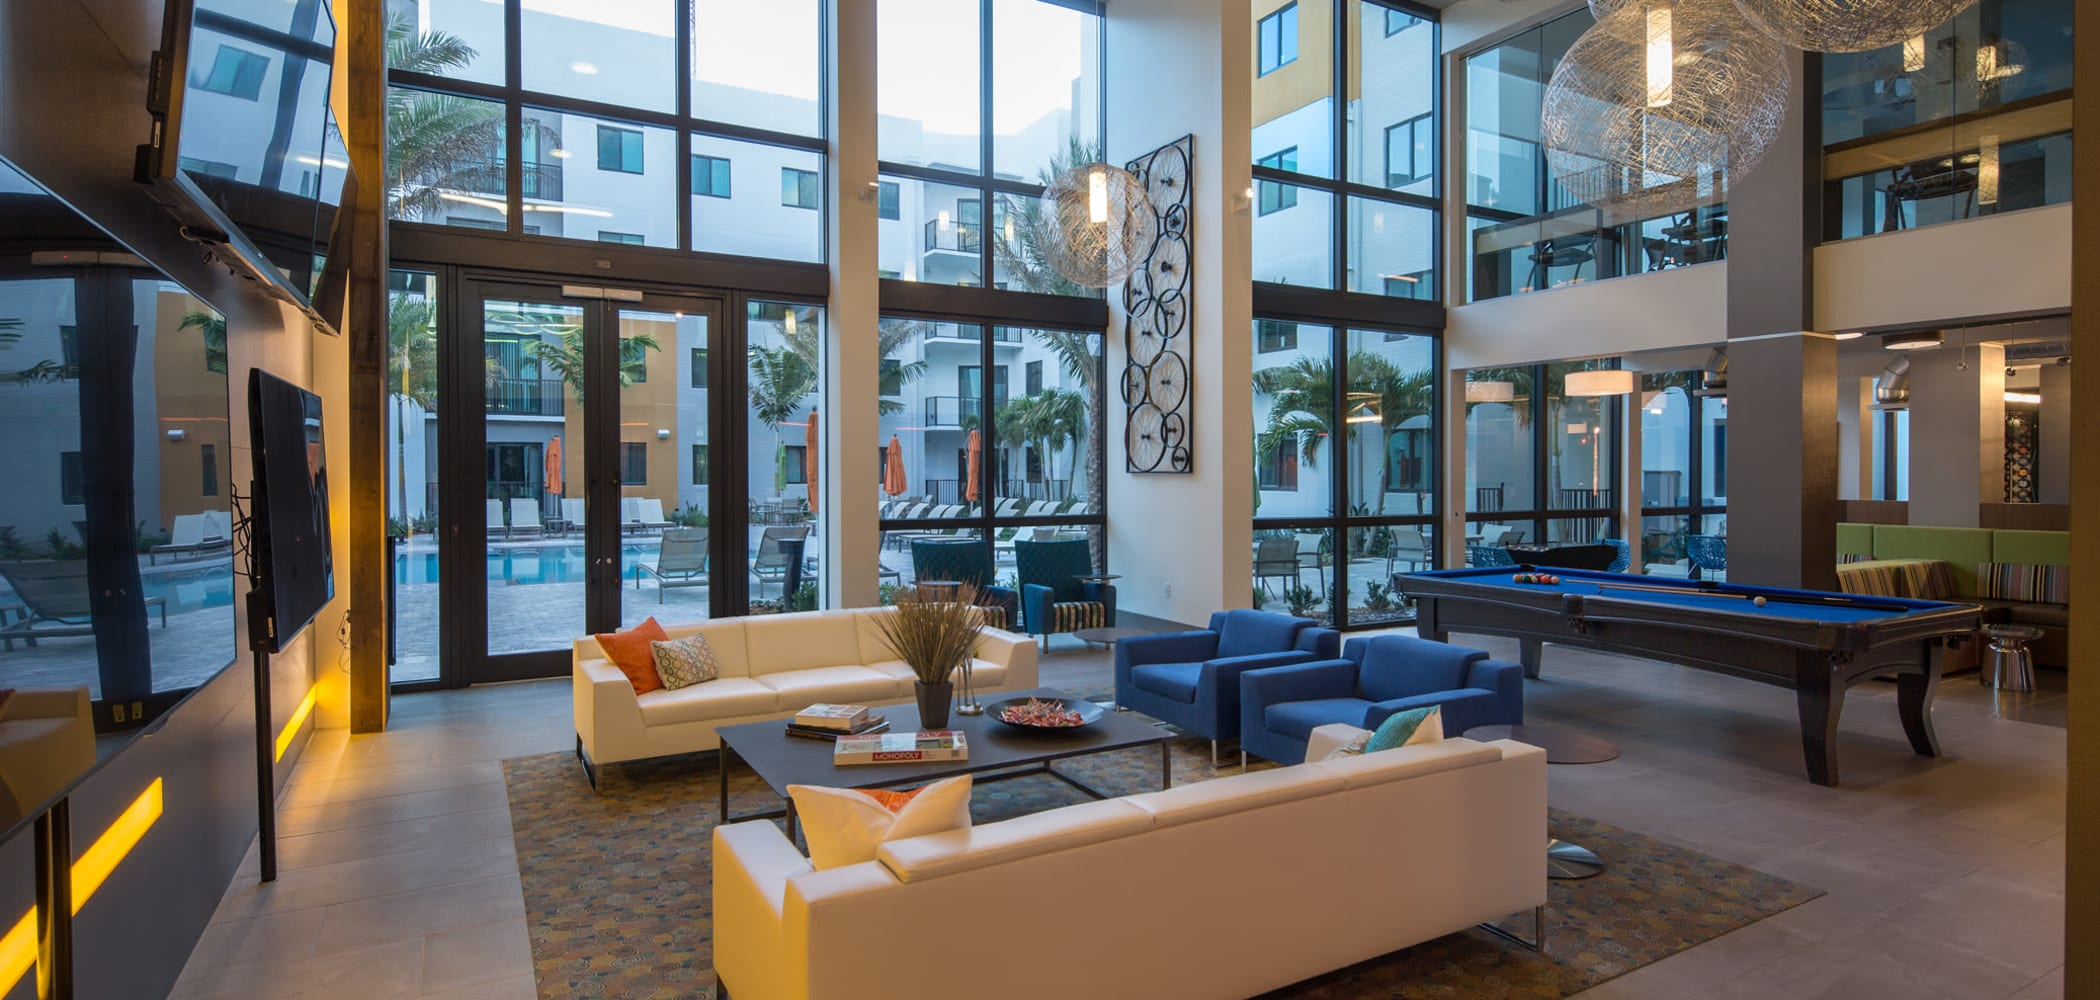 Tons of natural light with floor to ceiling windows in the game and lounge area at University Park in Boca Raton, Florida